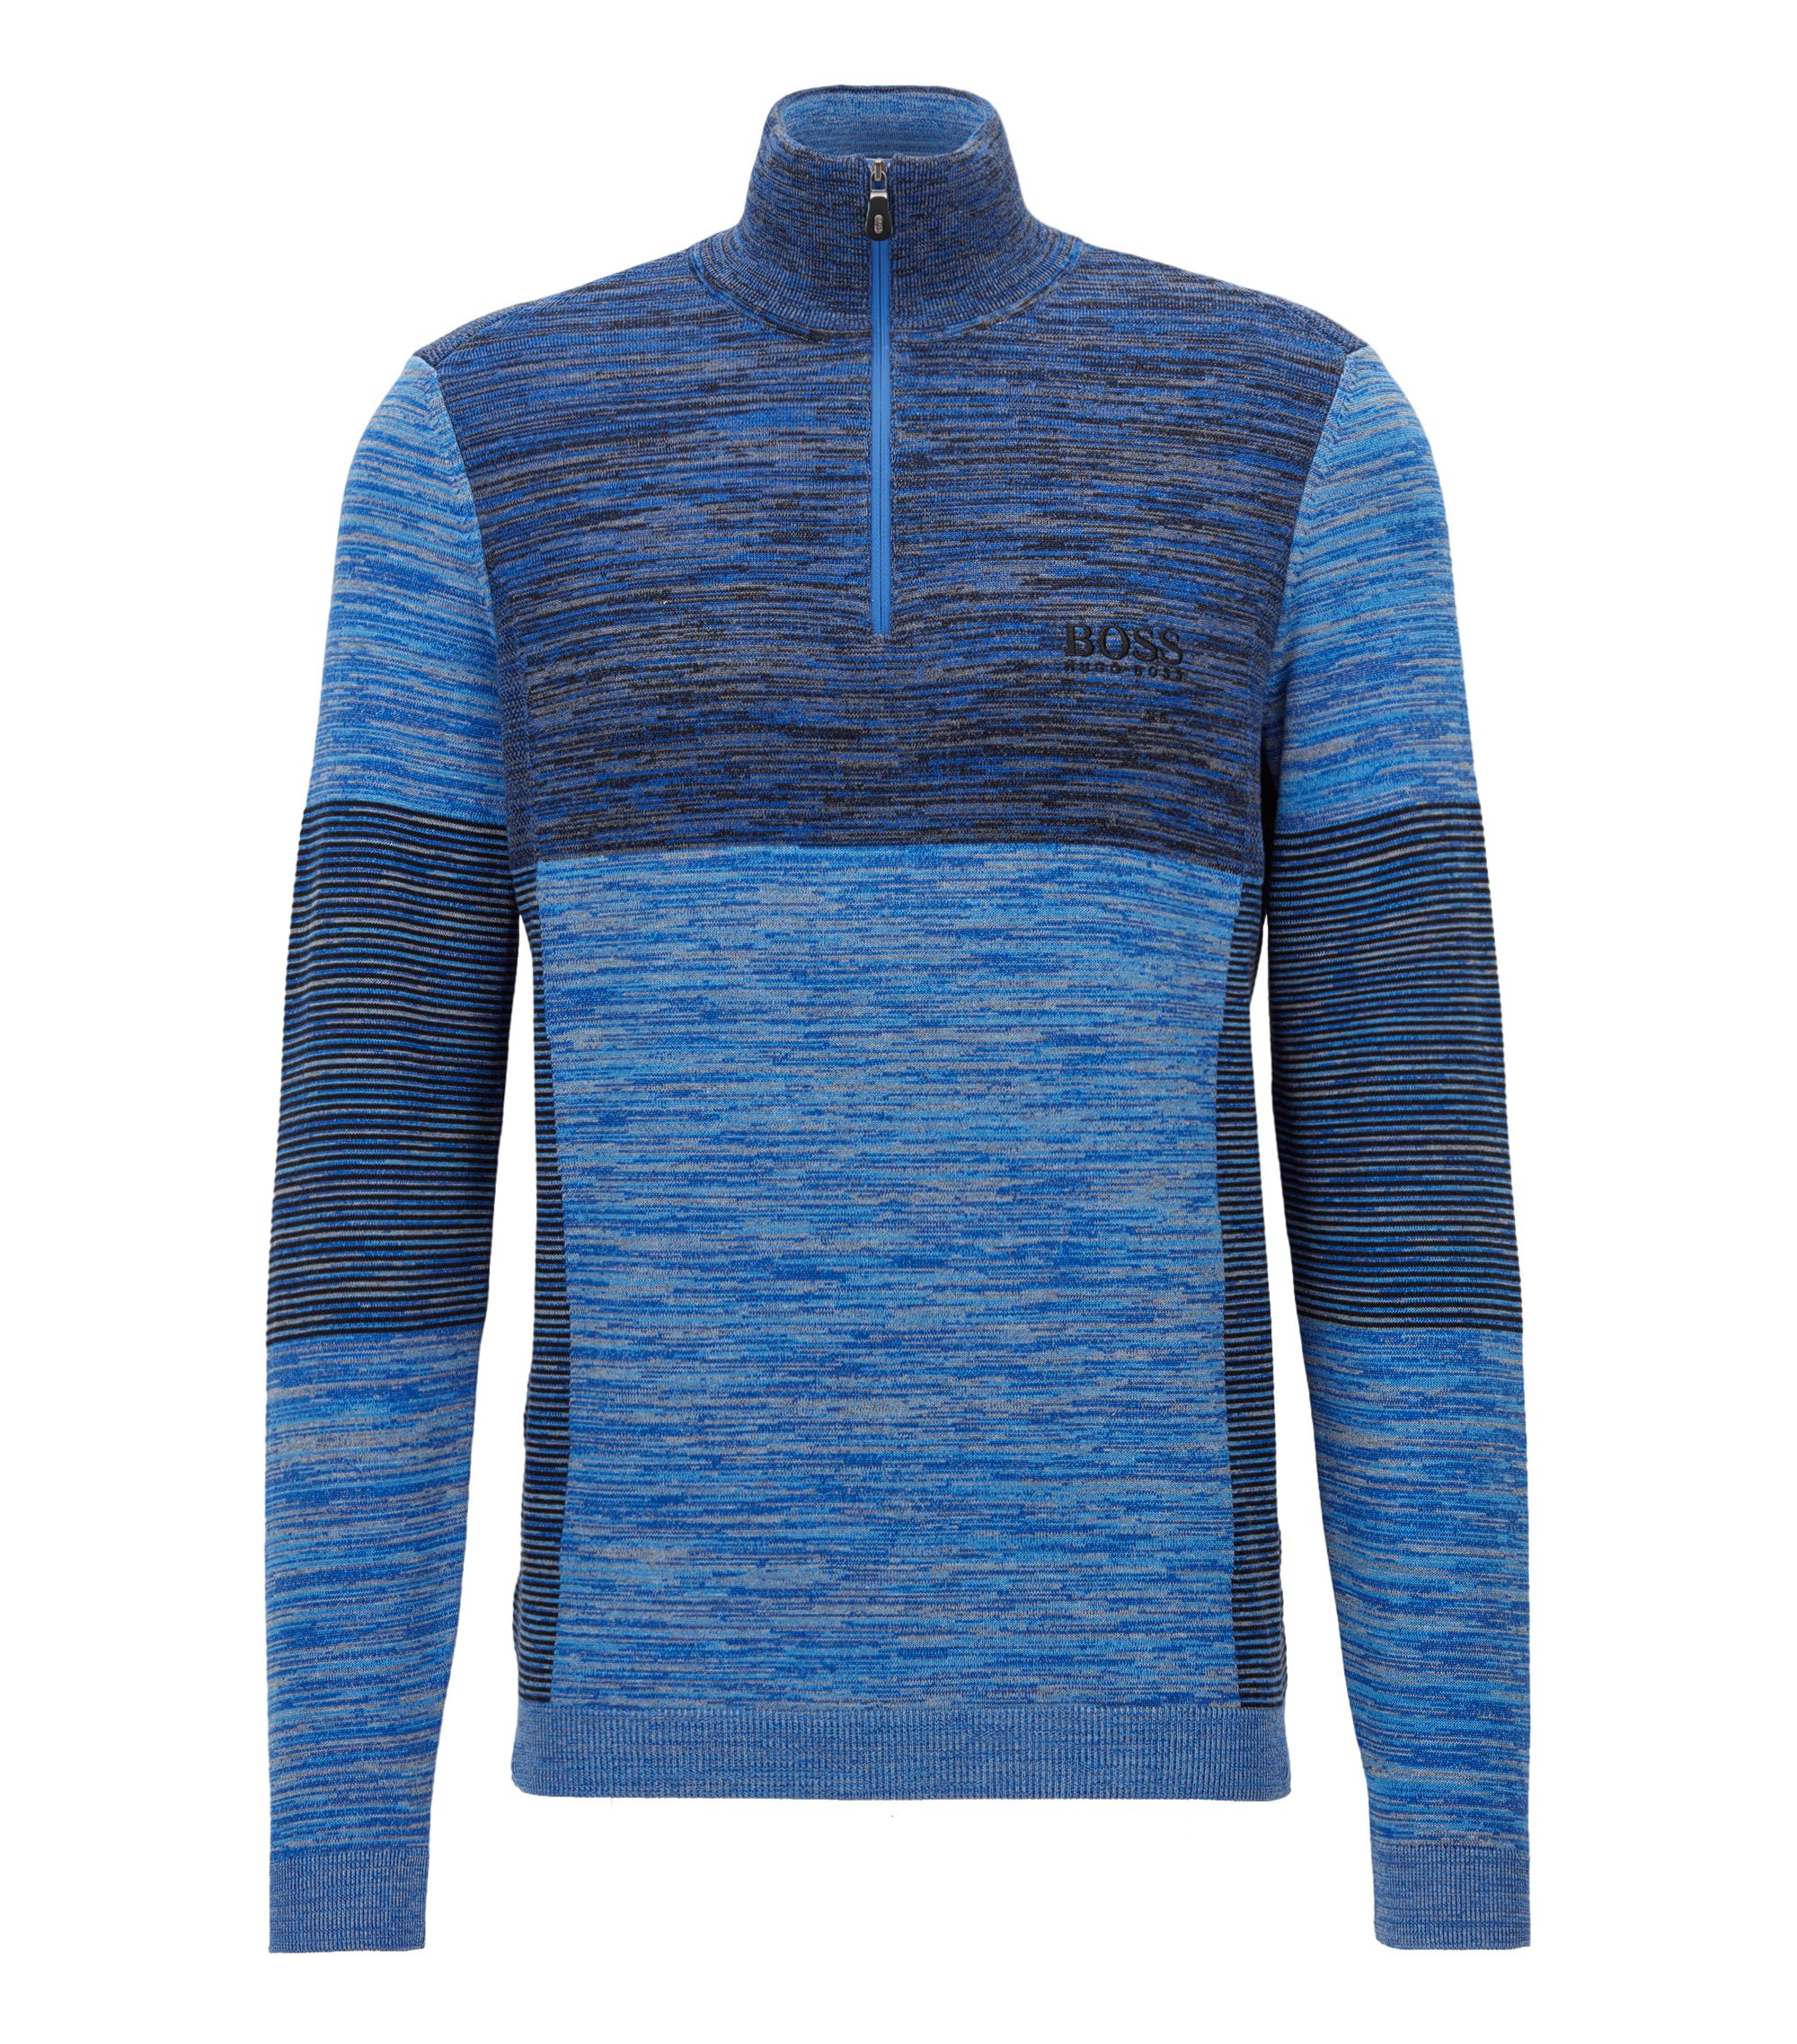 Colorblocked Melange Stretch Cotton Half-Zip Sweater | Zadok Pro, Blue